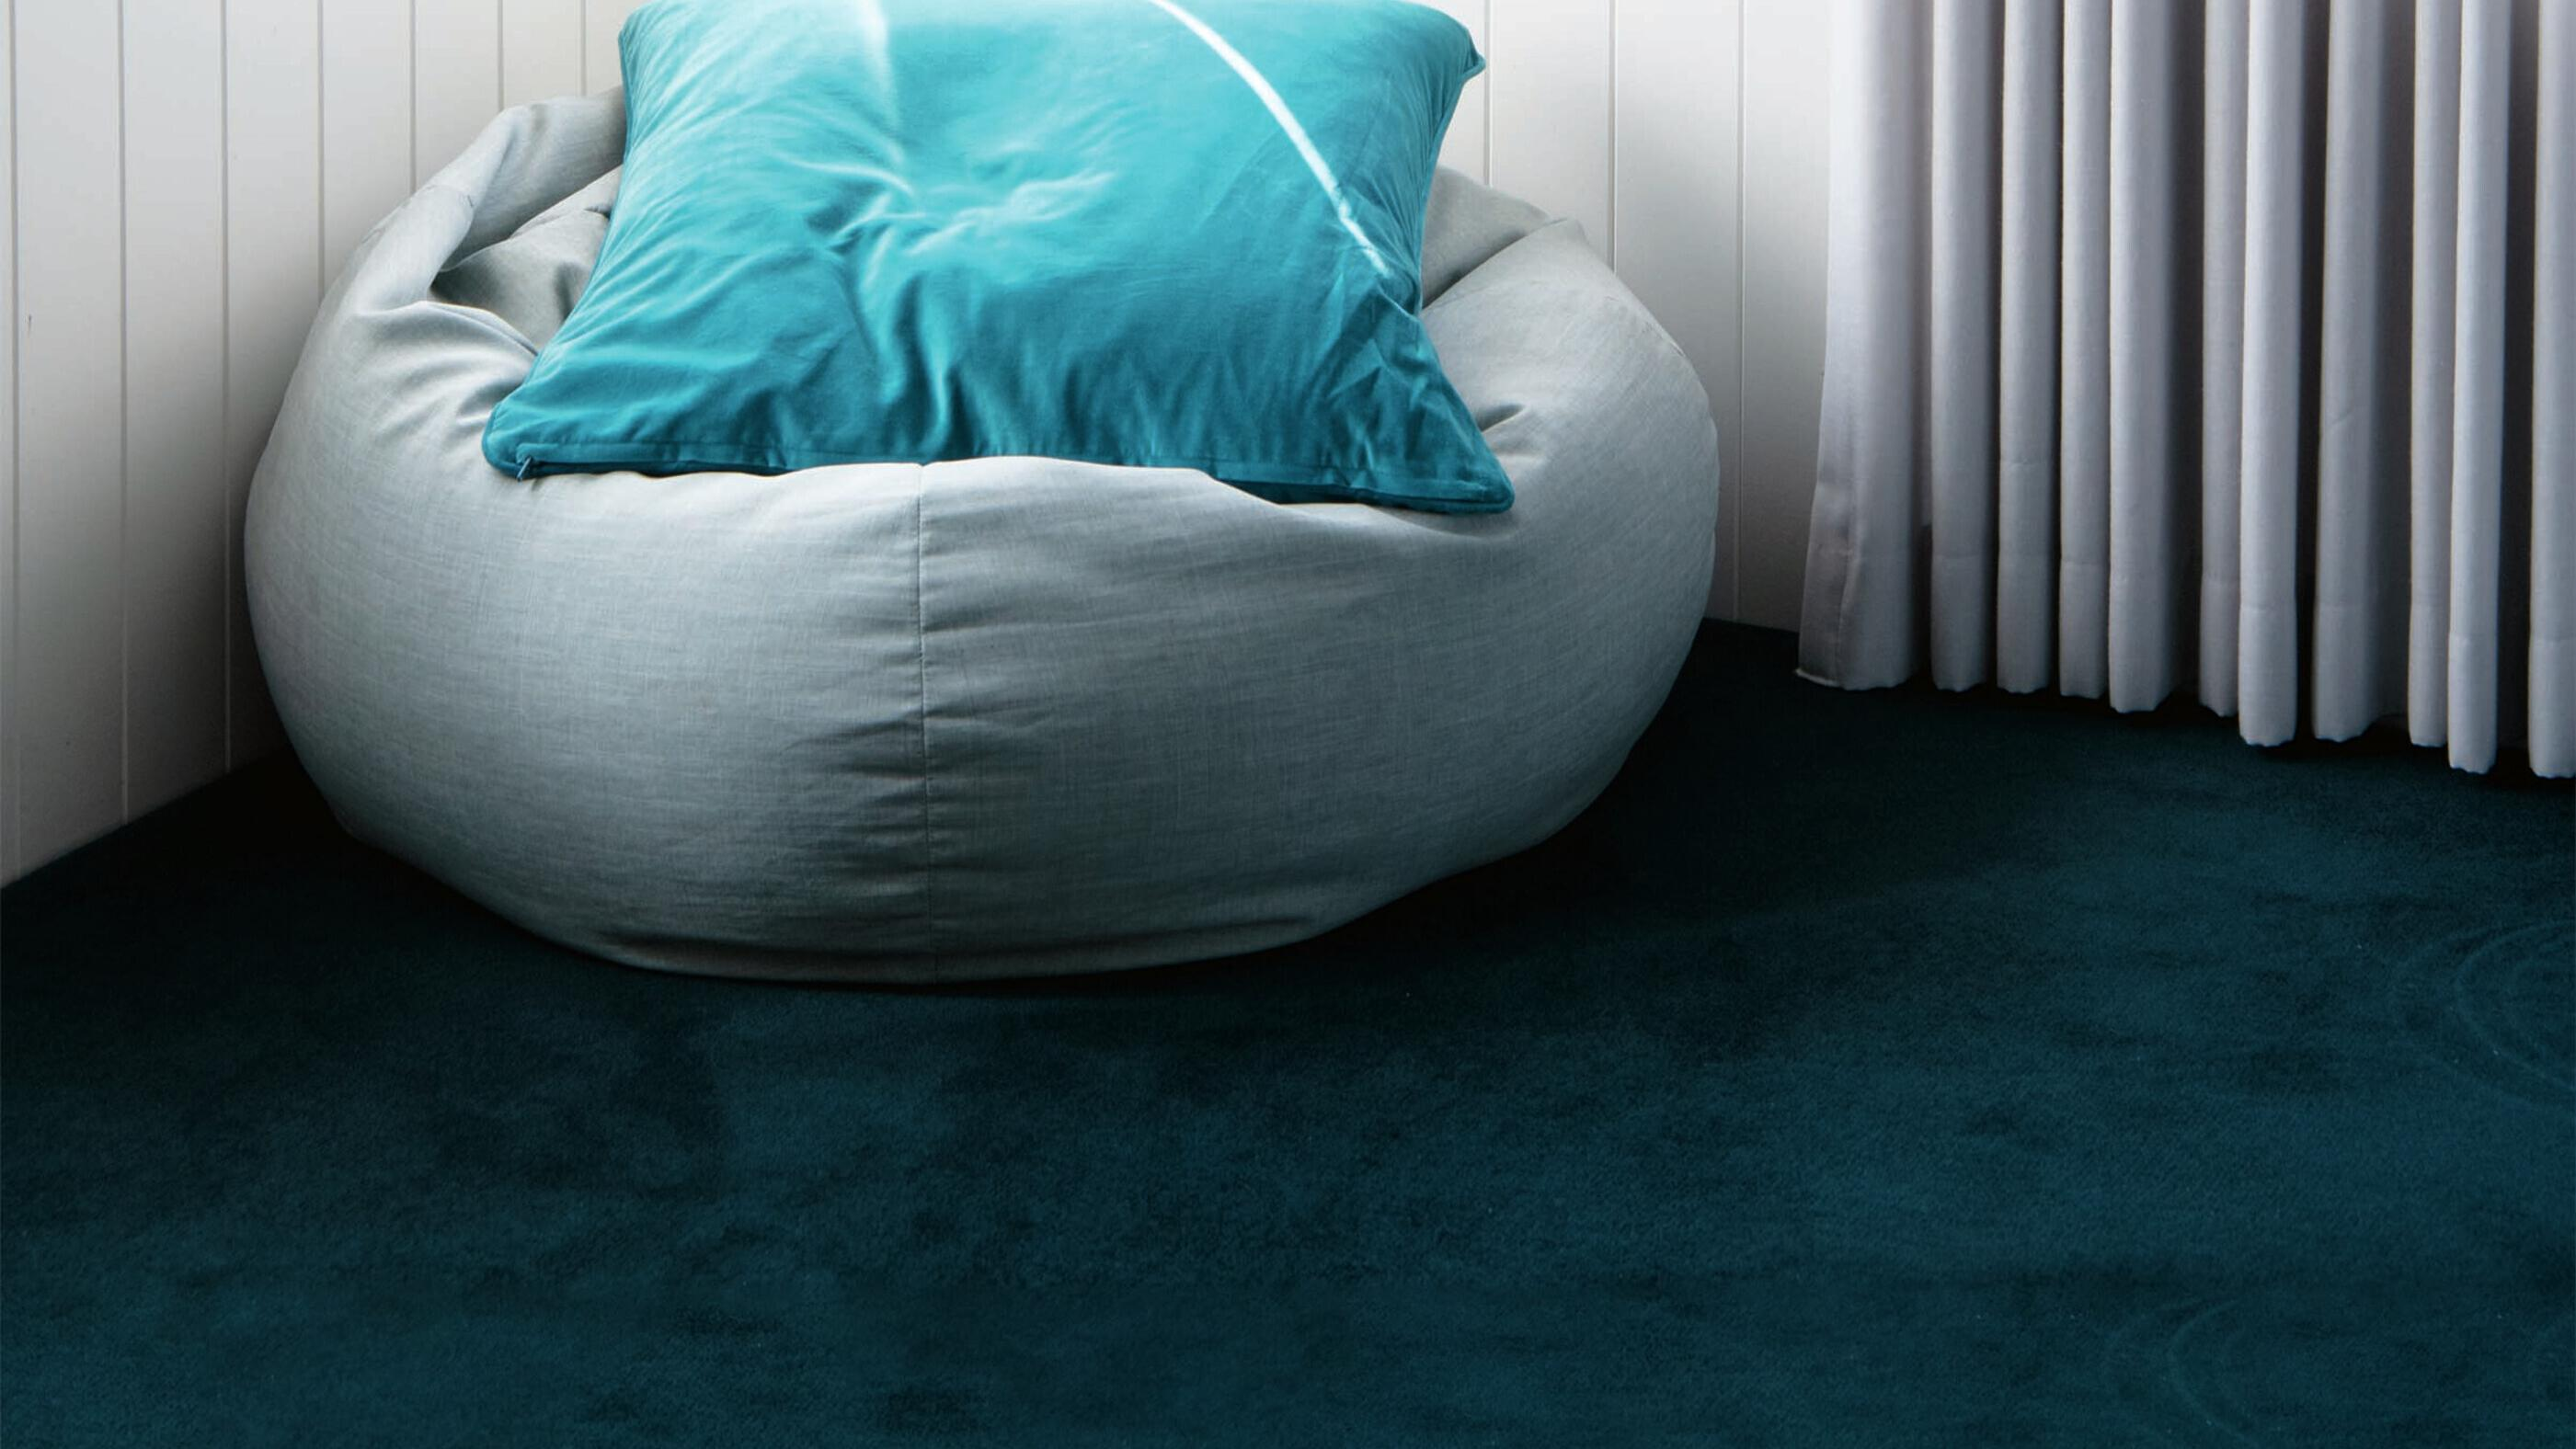 Carpet with grey bean bag on it